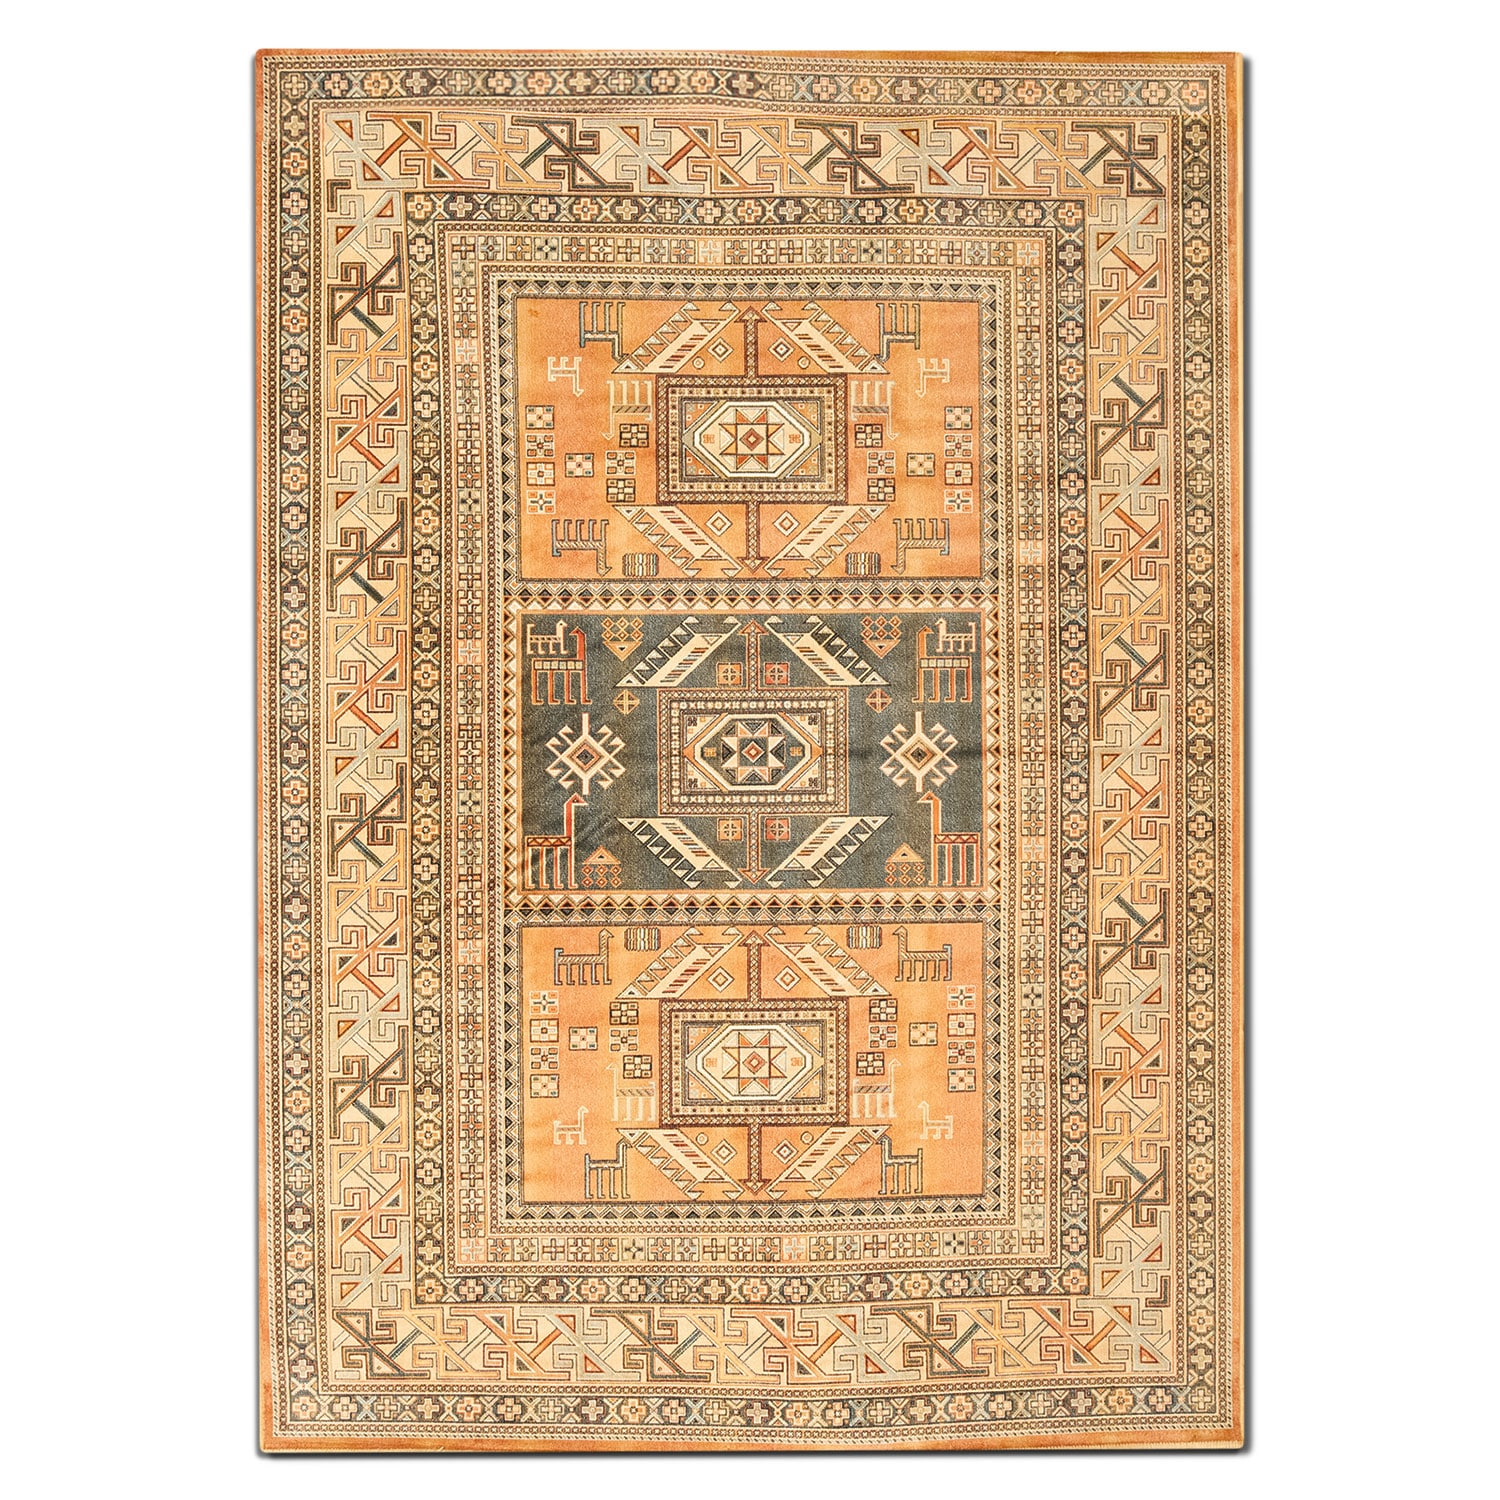 Sonoma 5 X 8 Area Rug Aqua And Copper Value City